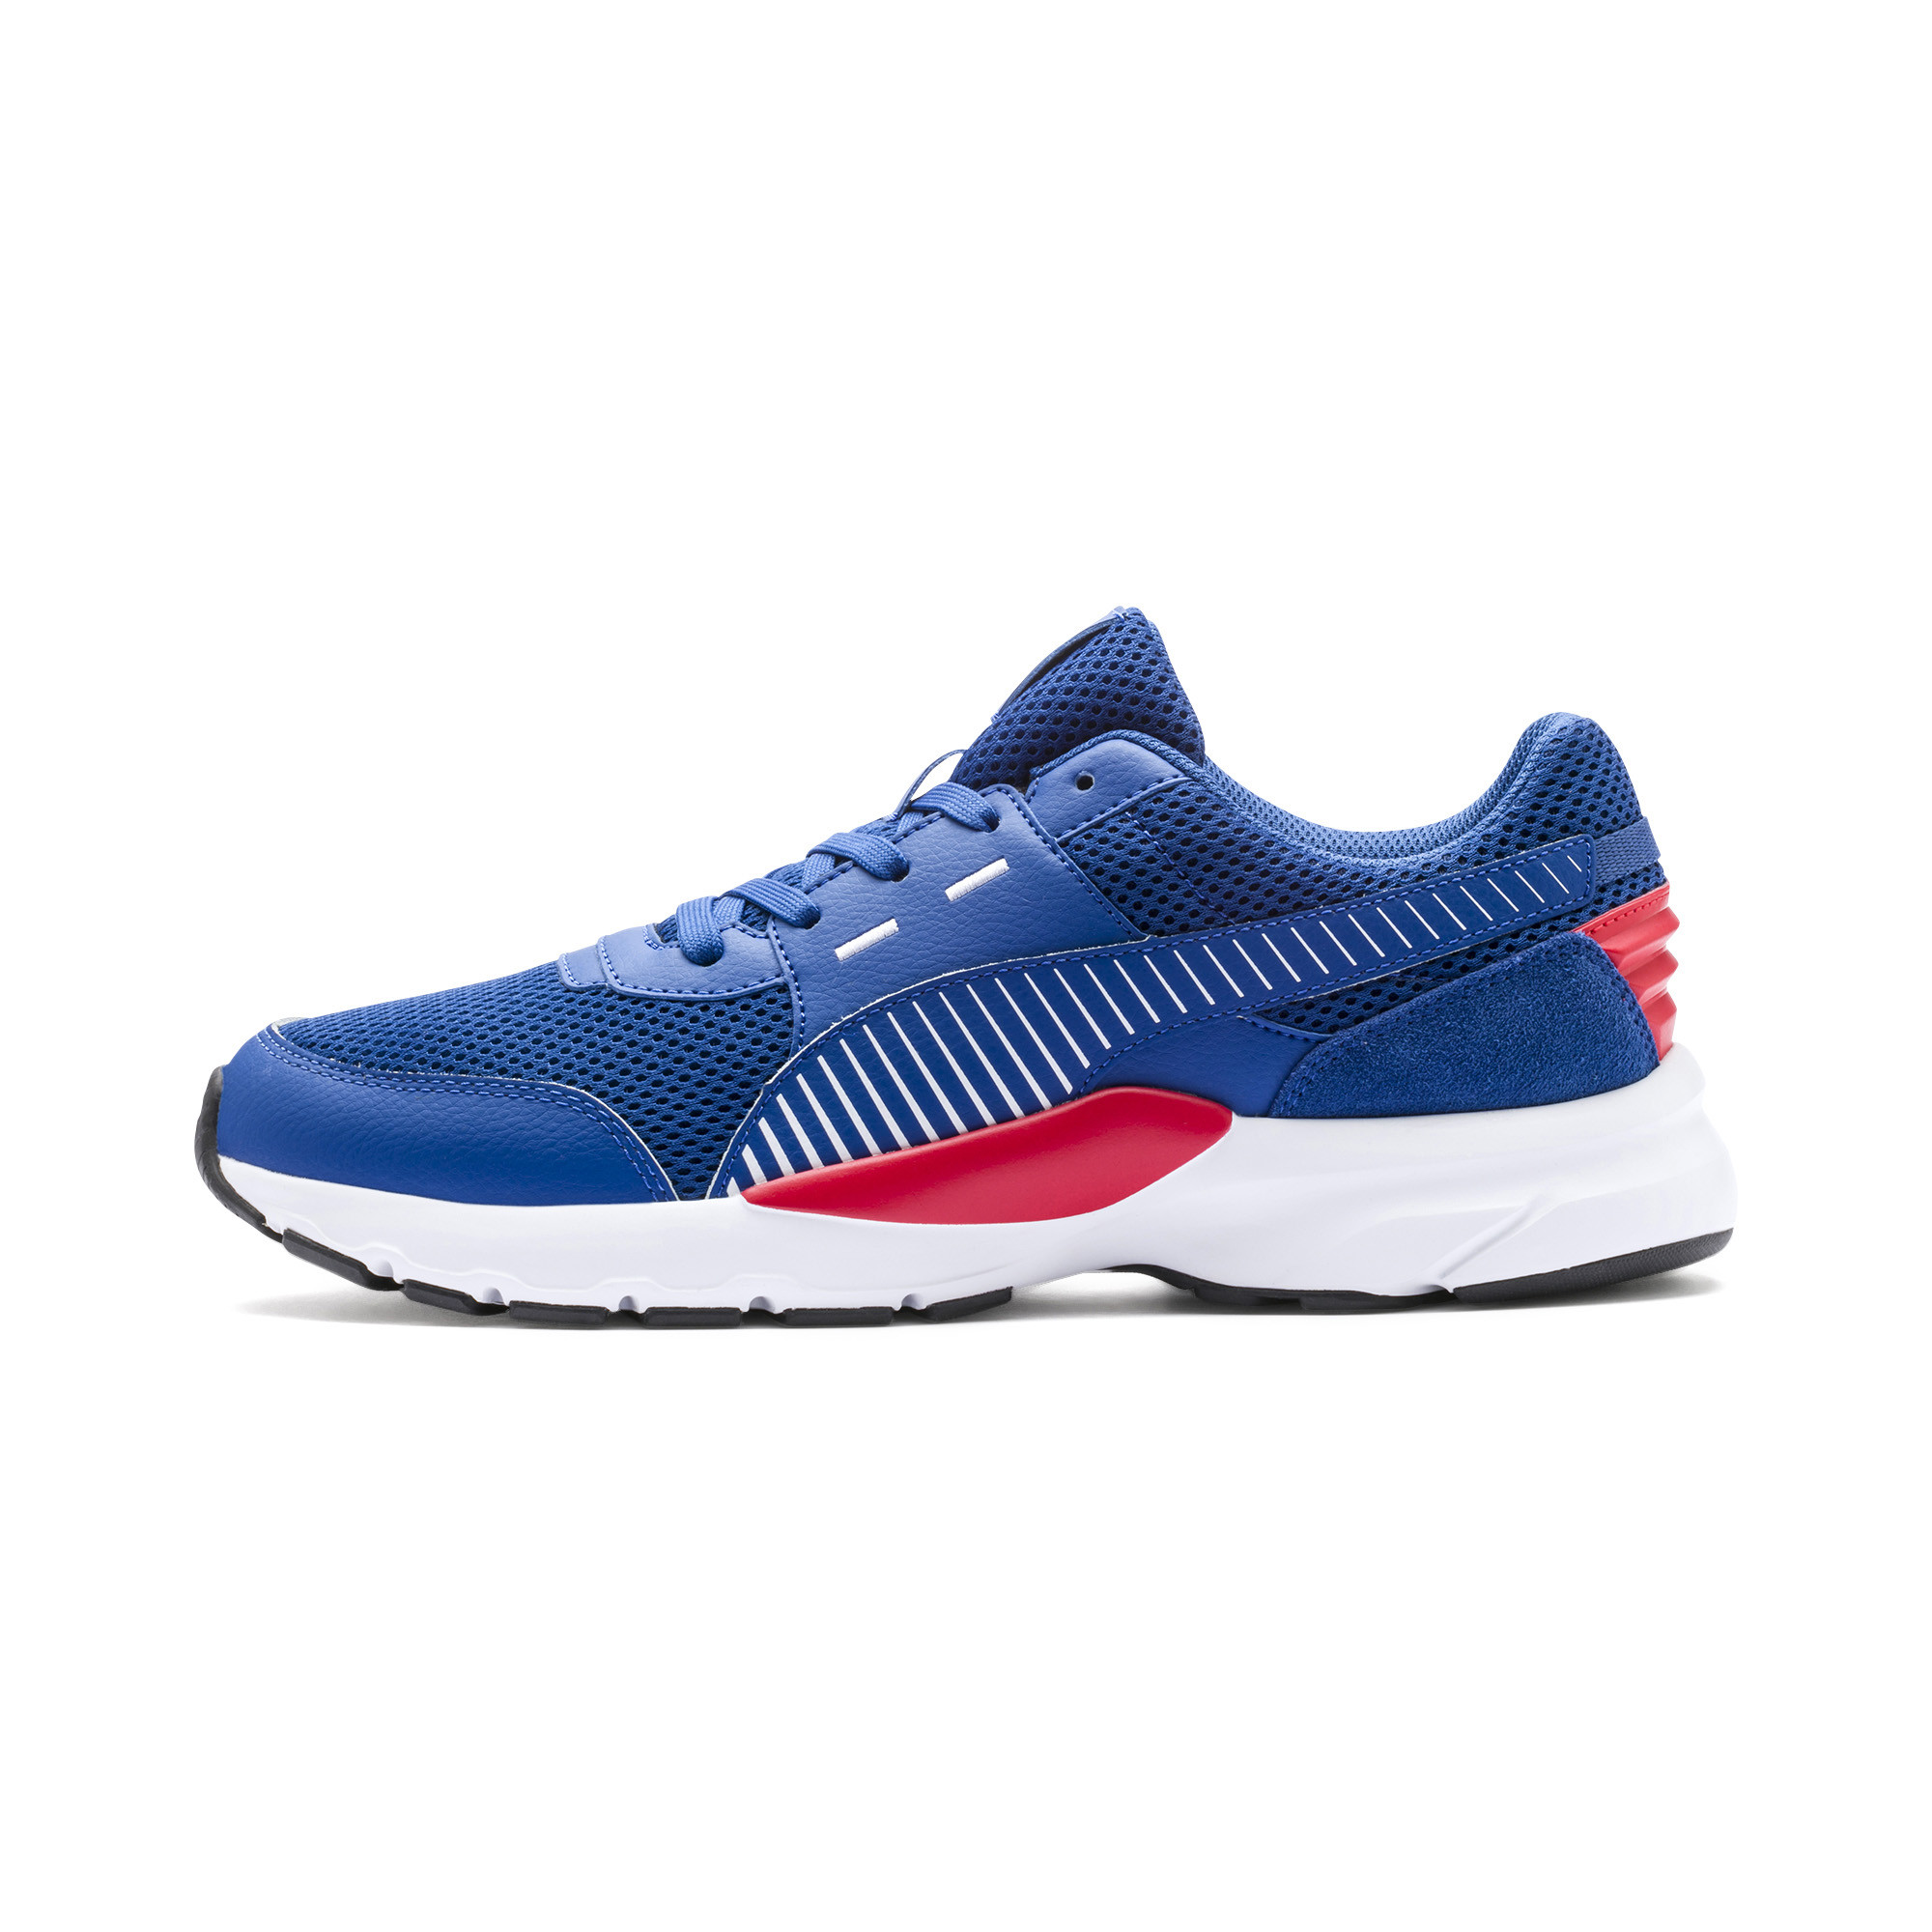 PUMA-Future-Runner-Premium-Men-039-s-Running-Shoes-Men-Shoe-Basics thumbnail 16